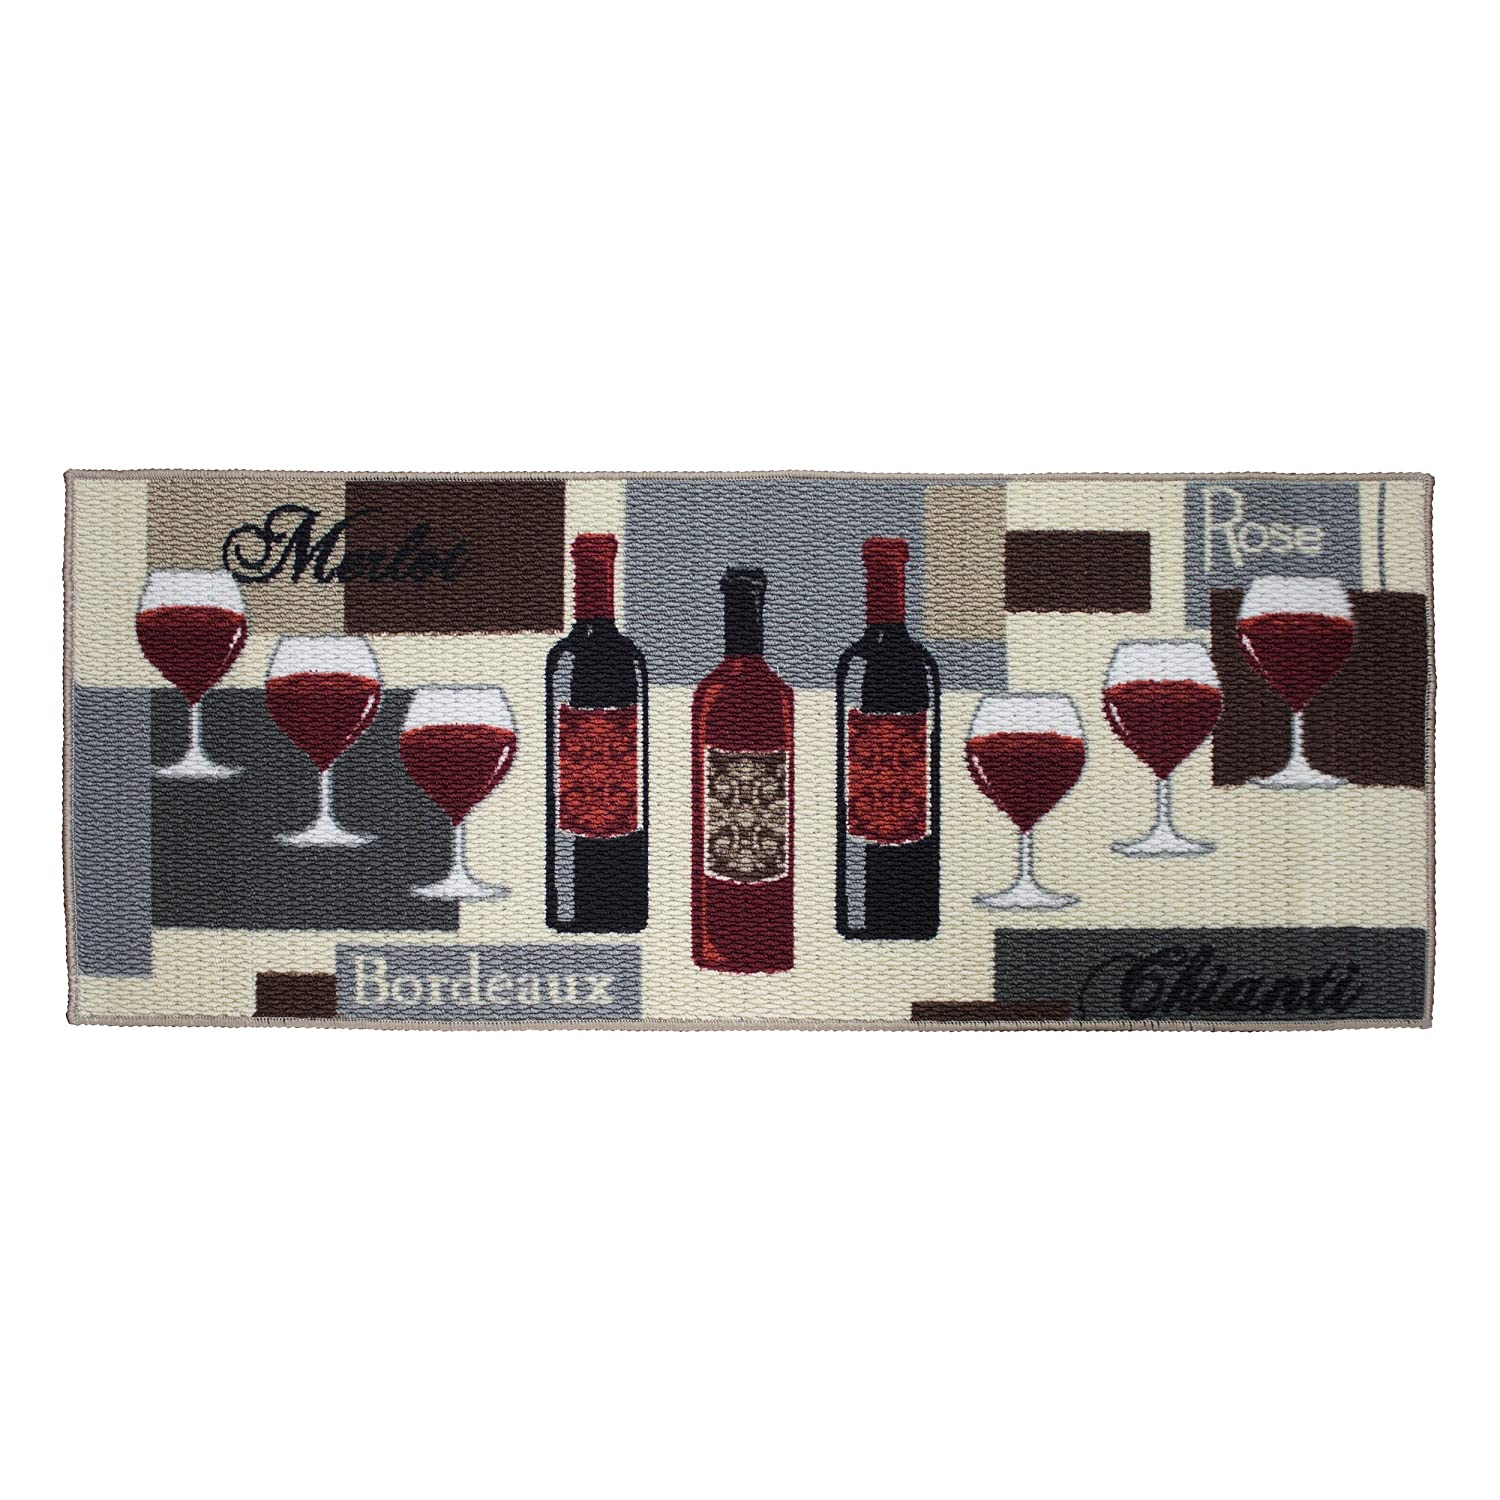 Structures Textured Loop 20 x 48 in. Runner Kitchen Accent Rug, Wine Time, Beige/Red/Grey YMF Carpets Inc. YMK003959